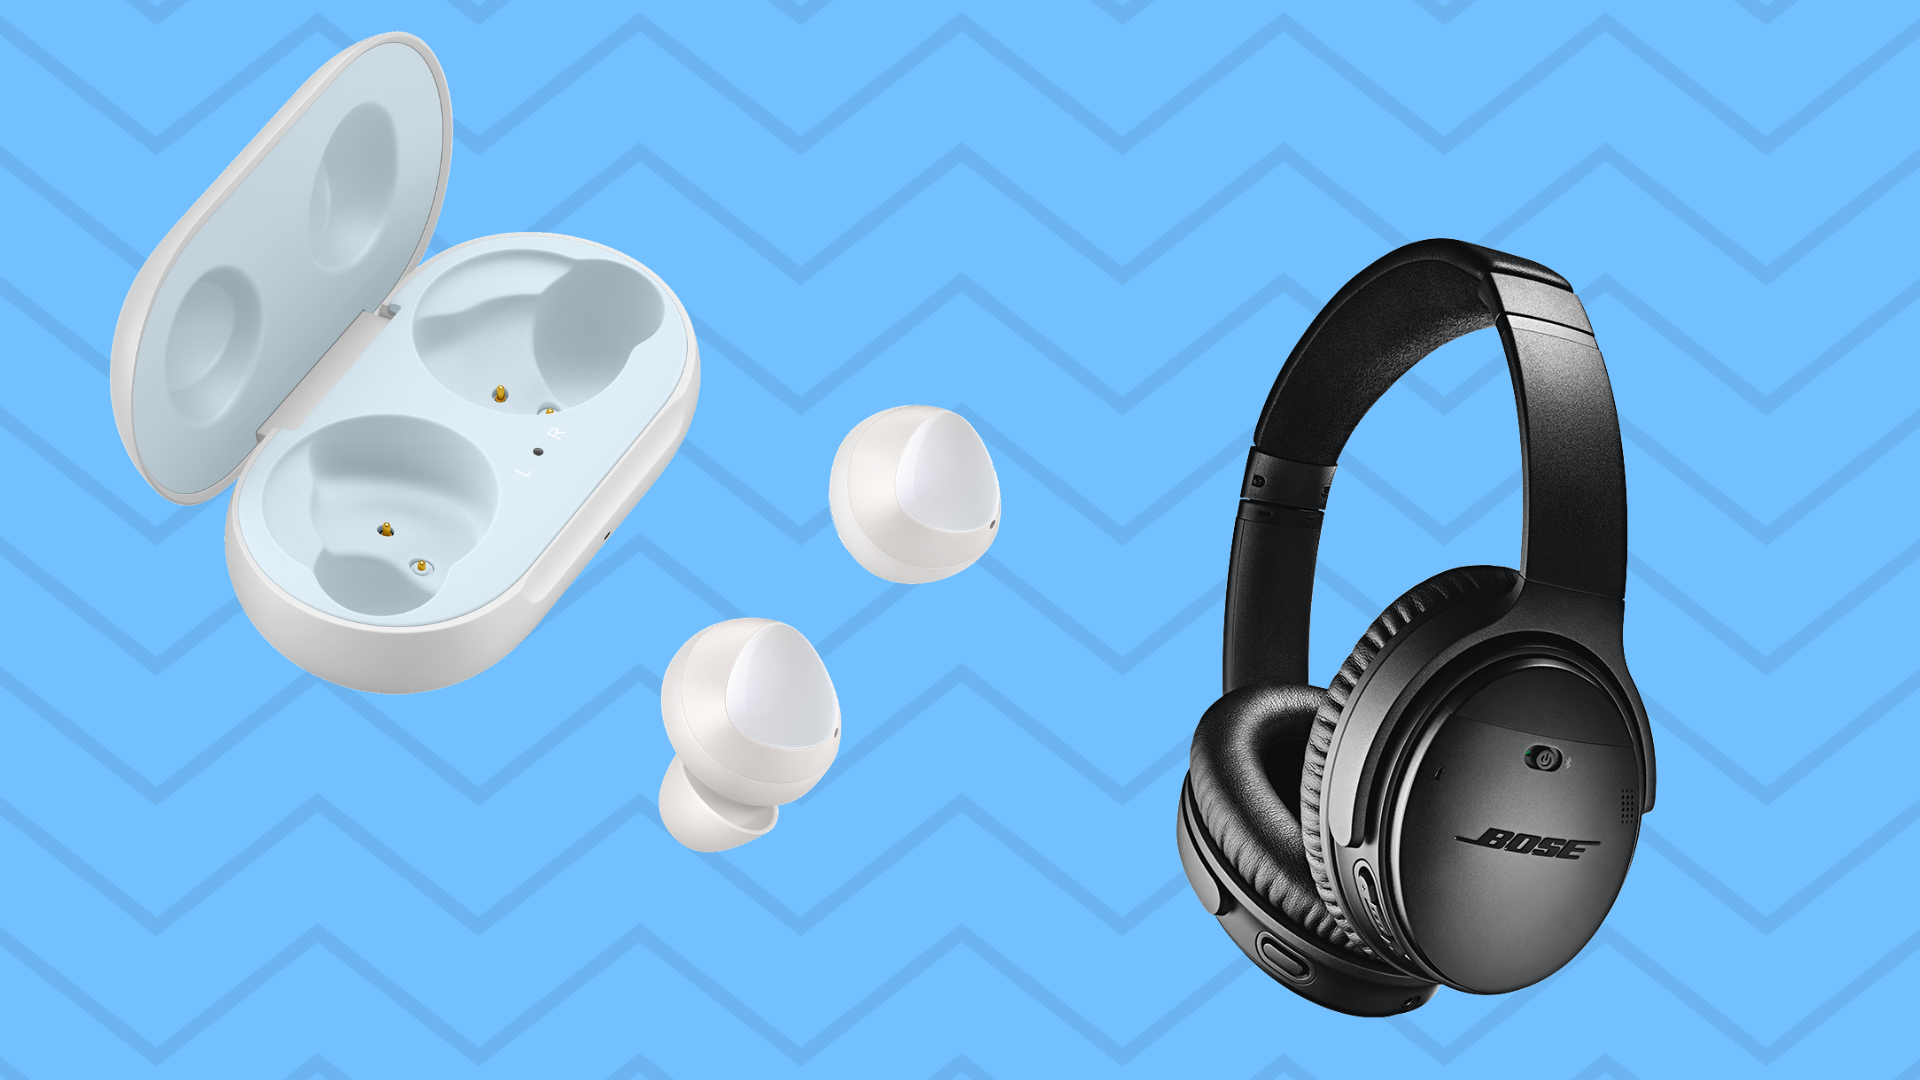 Listen up! Walmart's extended Black Friday deals on headphones are still bonkers— prices start at just $17